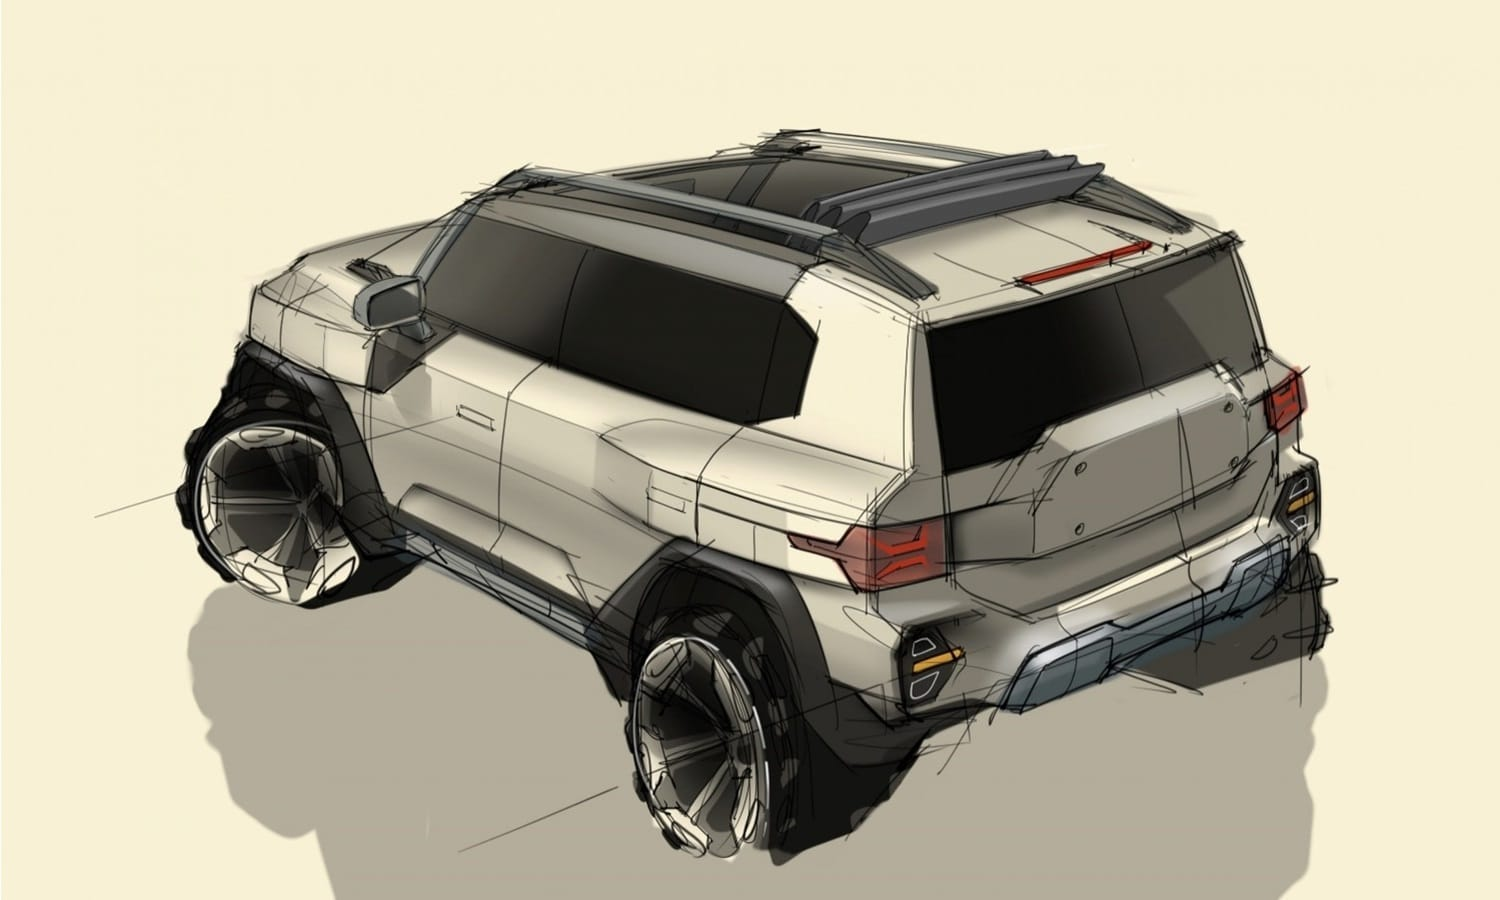 SsangYong X200 Prototype teaser - SsangYong Motors previews the design of next generation SUV